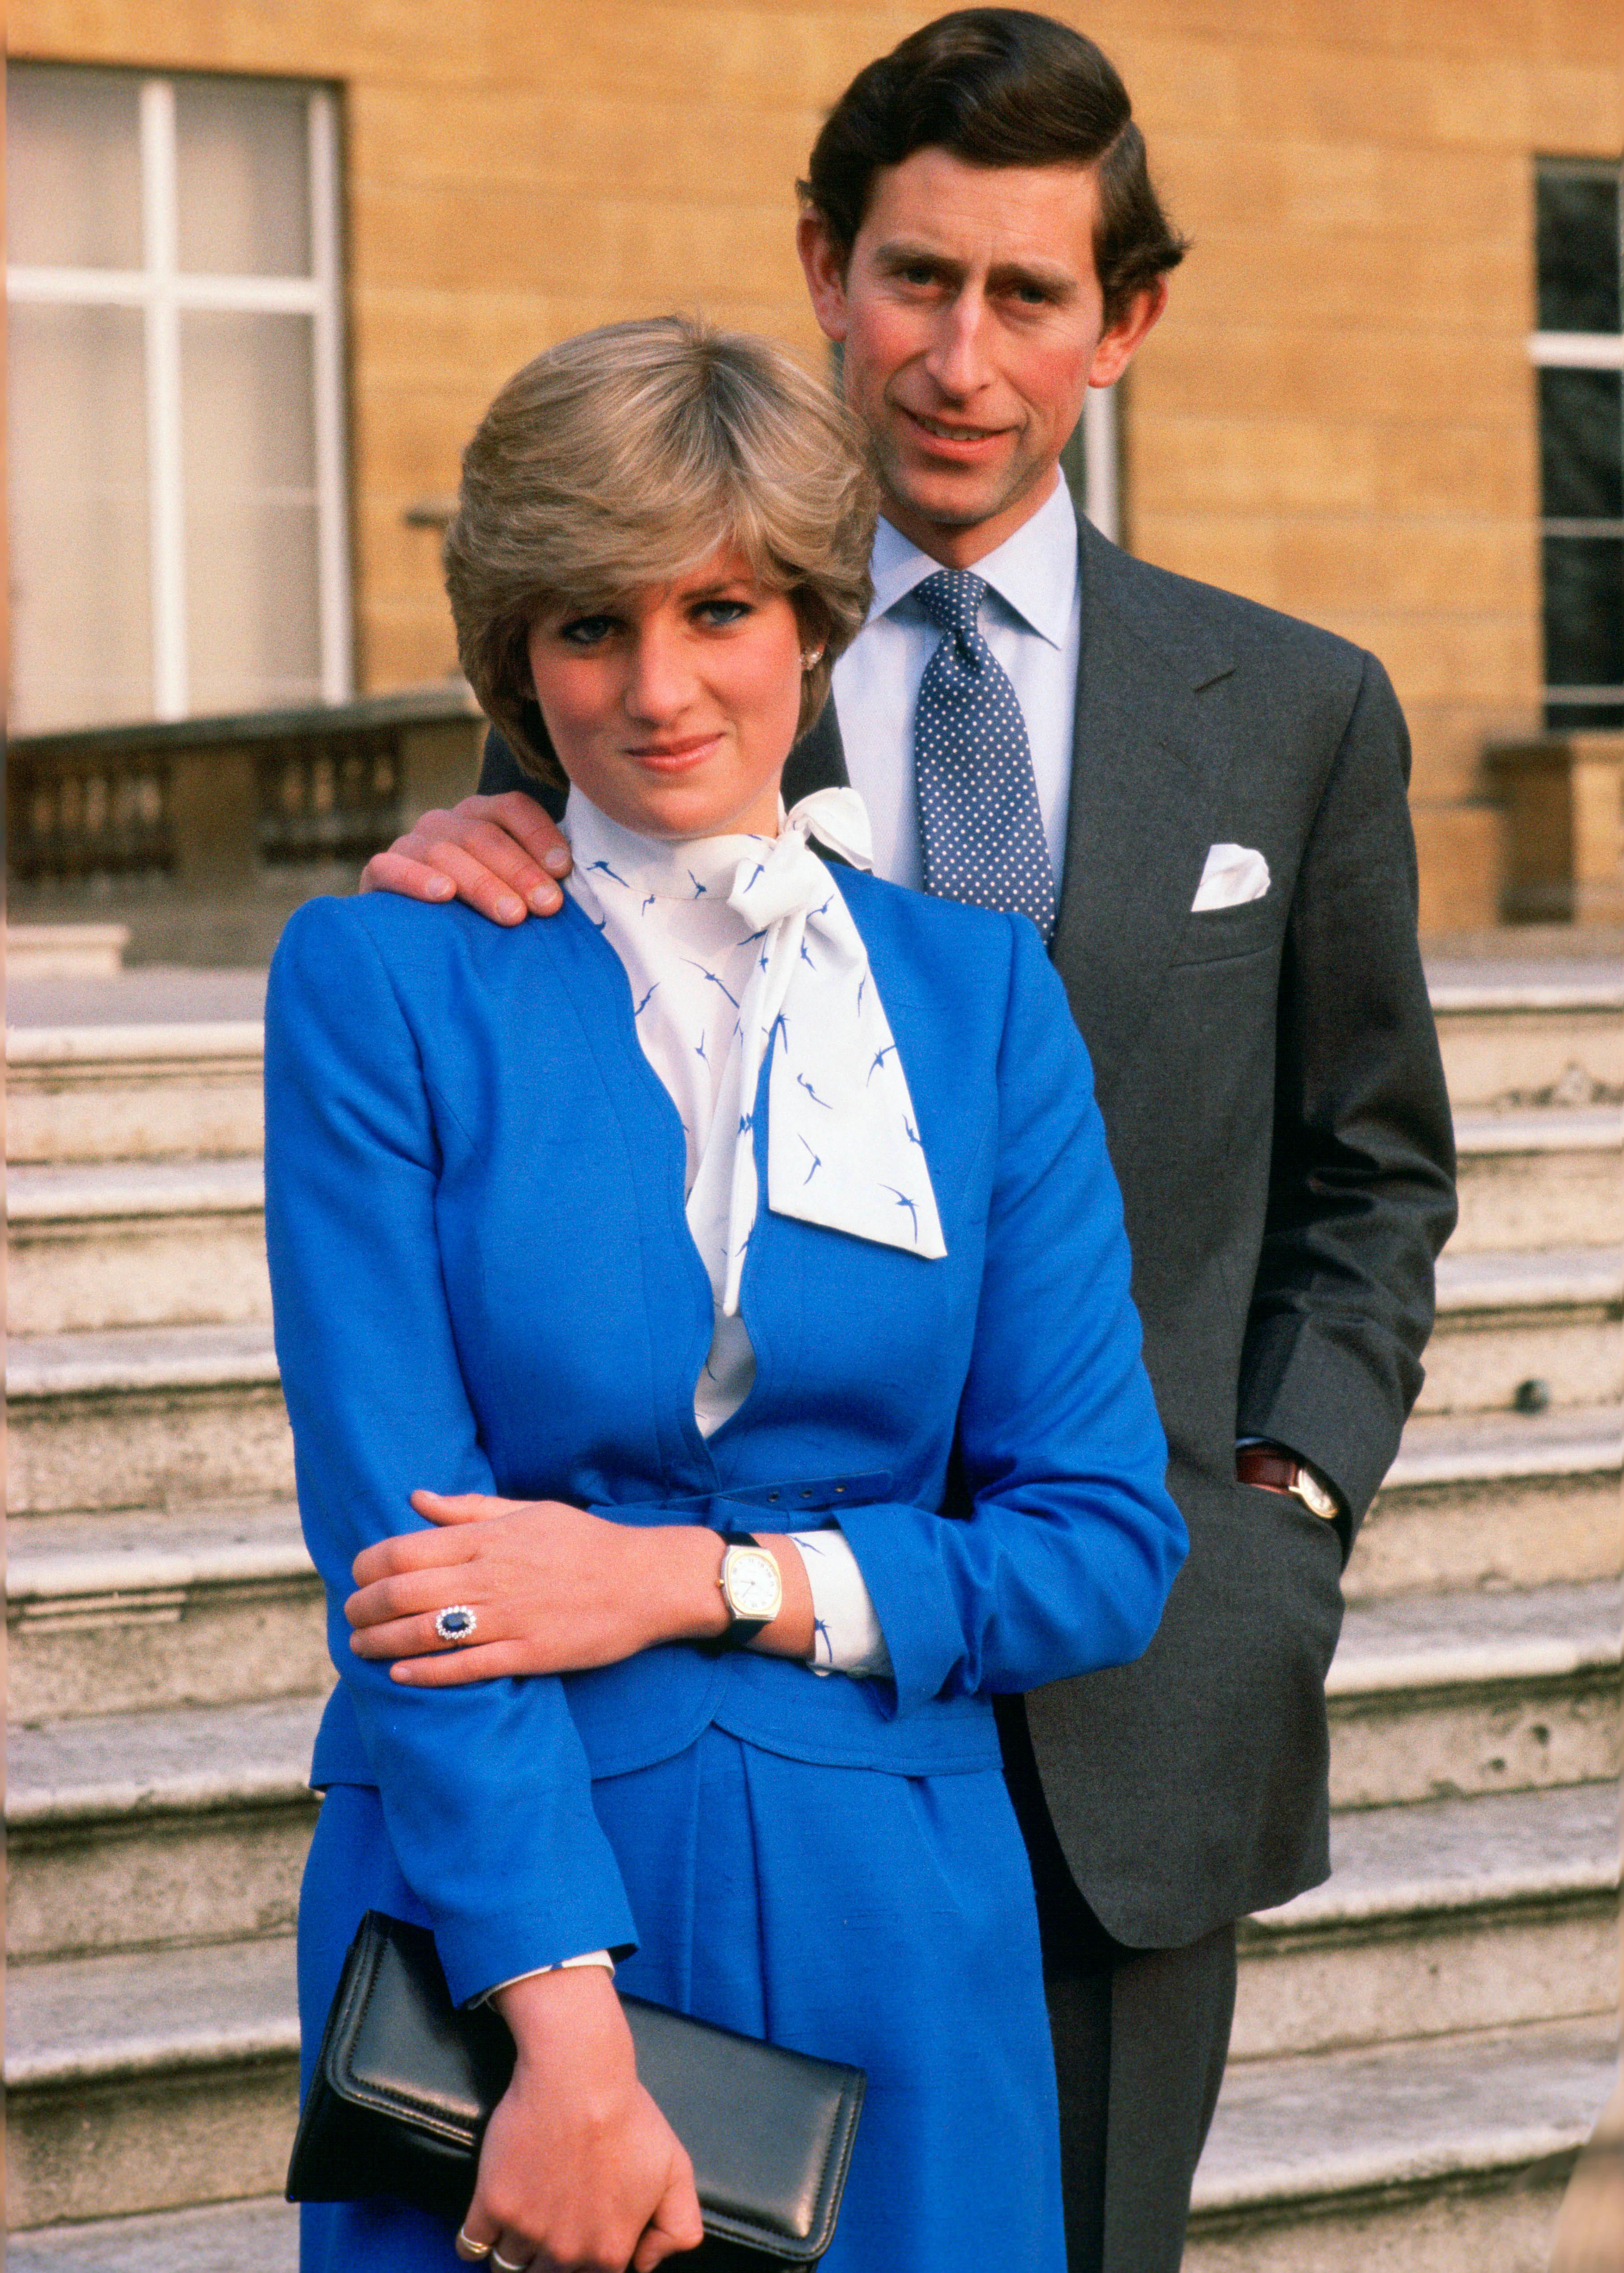 GREAT BRITAIN - FEBRUARY 24: Lady Diana Spencer (later to become Princess of Wales) reveals her sapphire and diamond engagement ring while she and Prince Charles, Prince of Wales pose for photographs in the grounds of Buckingham Palace following the announcement of their engagement 1981